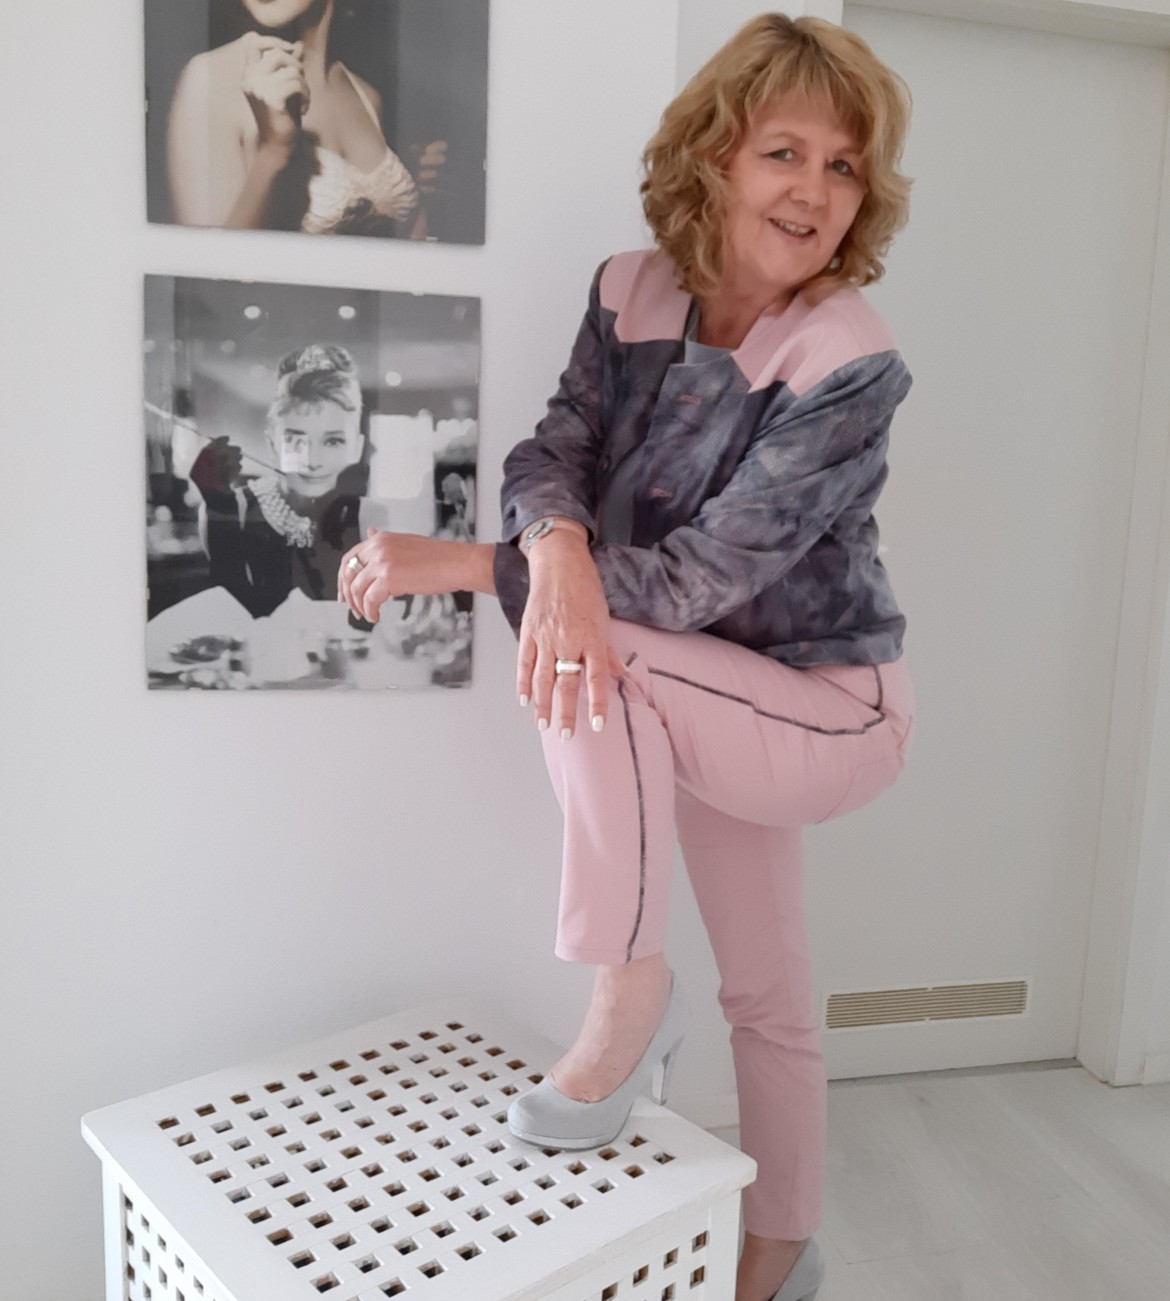 burda style Nutzerkreation beaxs Kombination in  Rosa-Grau